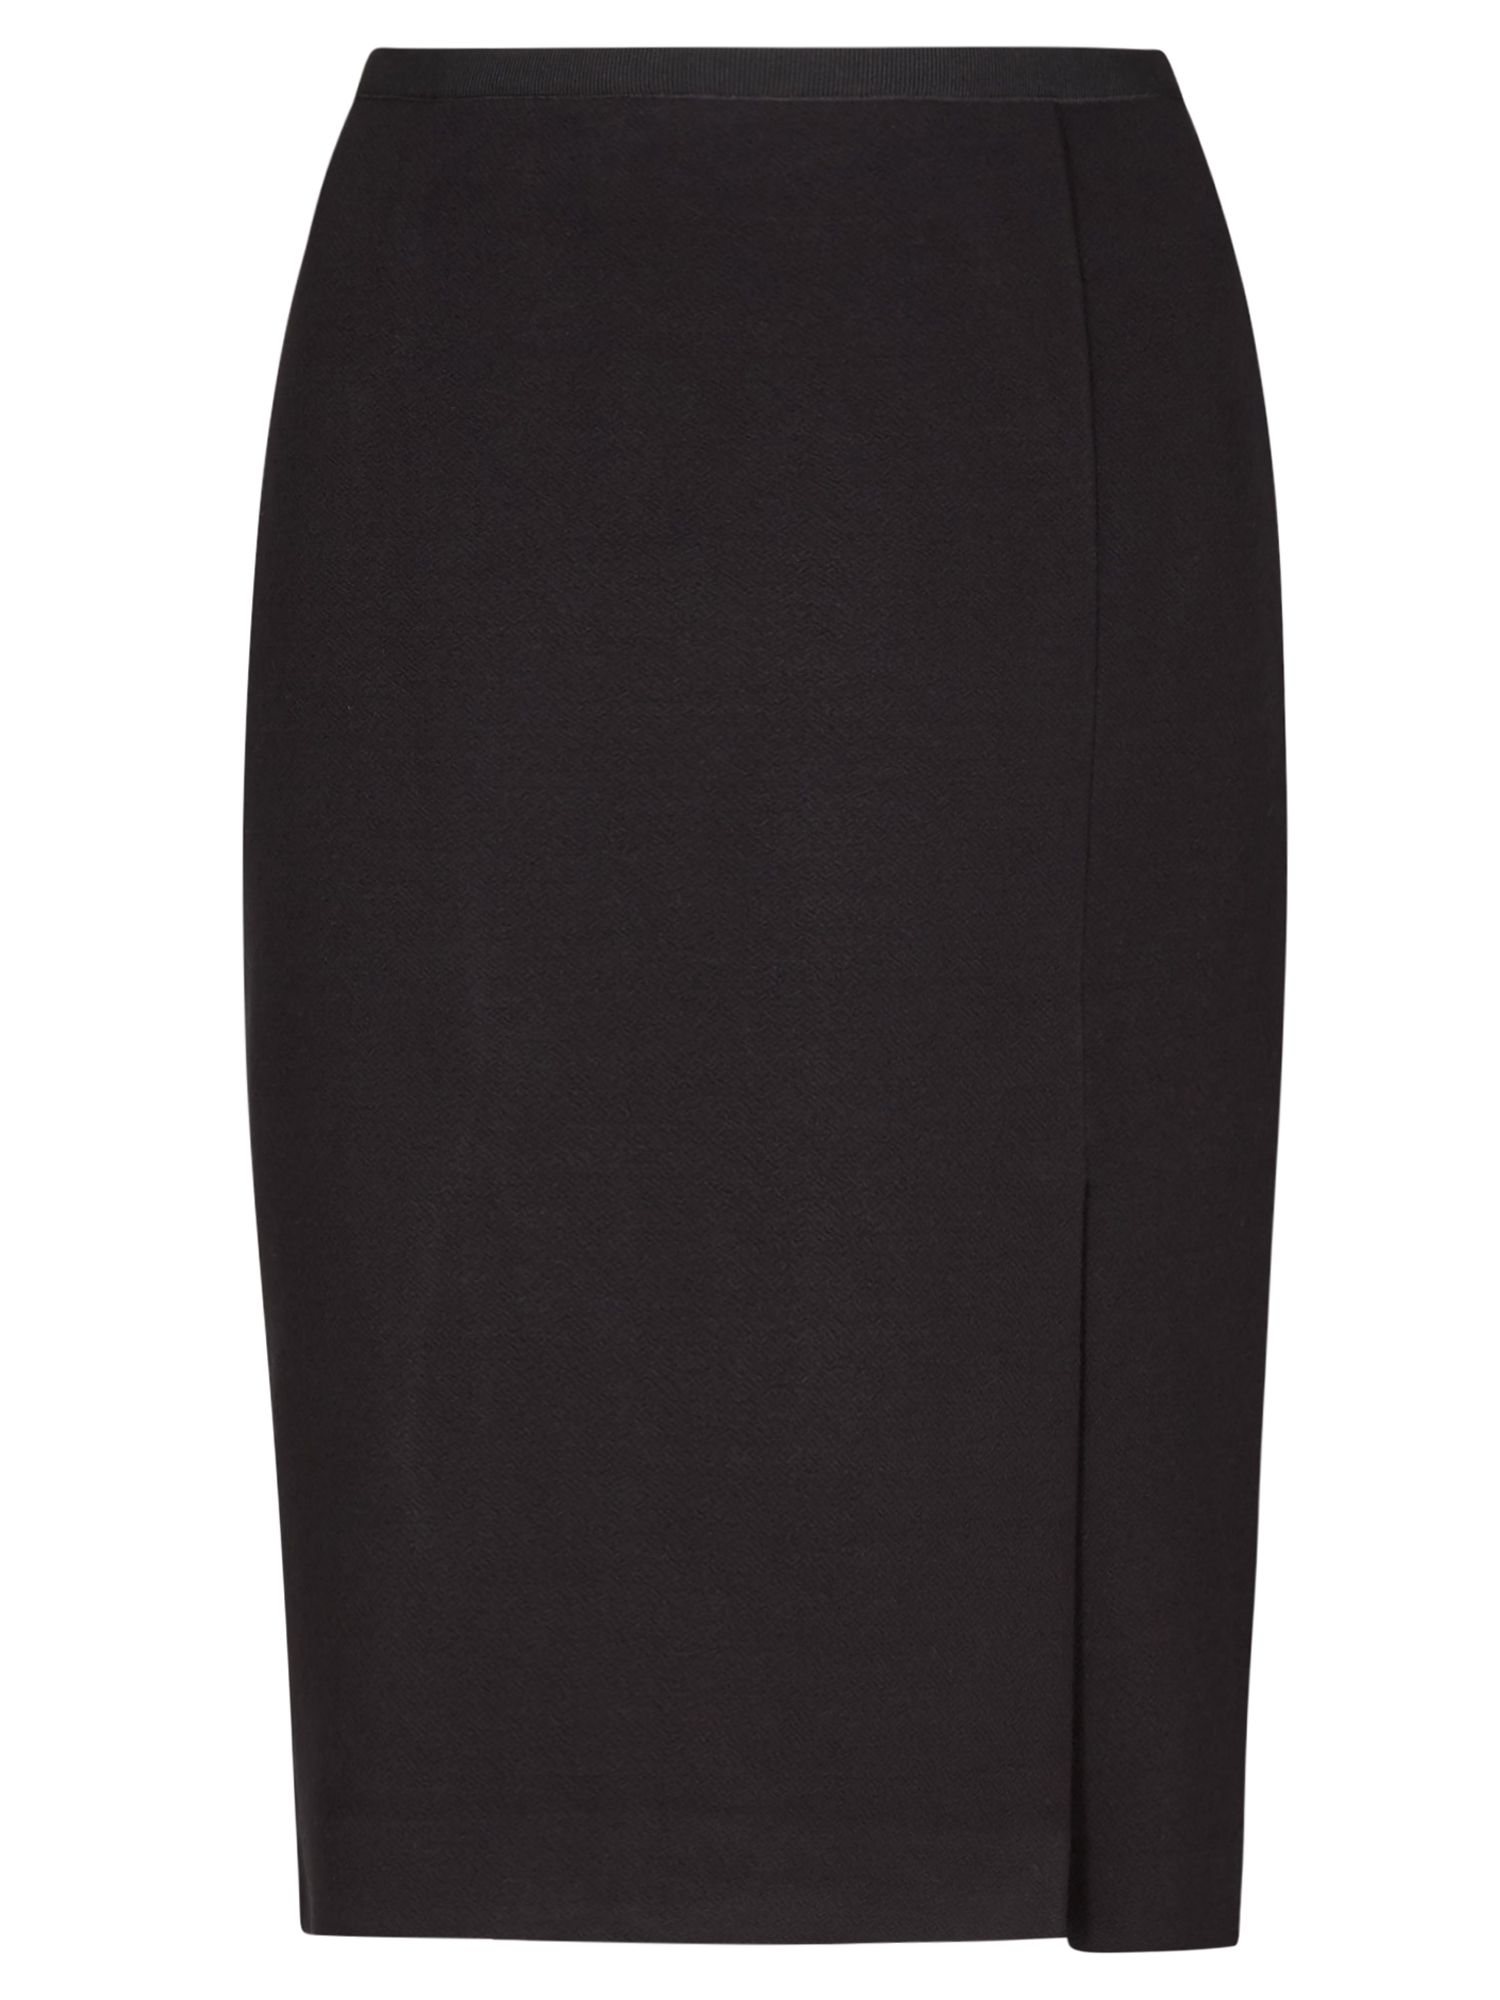 Winser London Crepe Jersey Skirt, Black